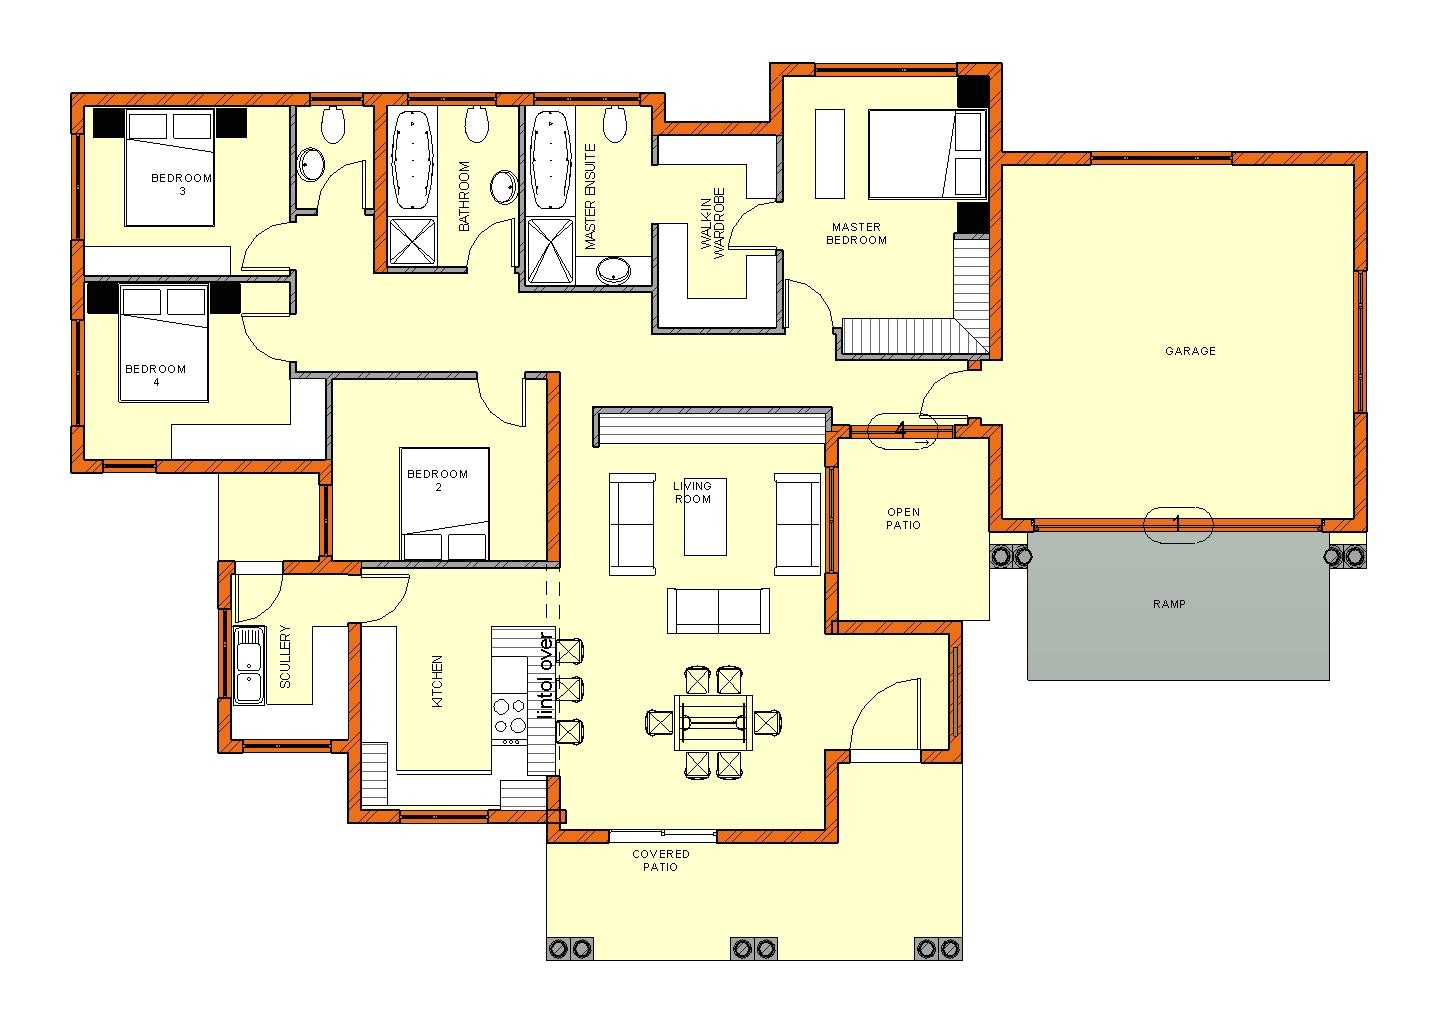 4 bedroom house plans pdf in south africa